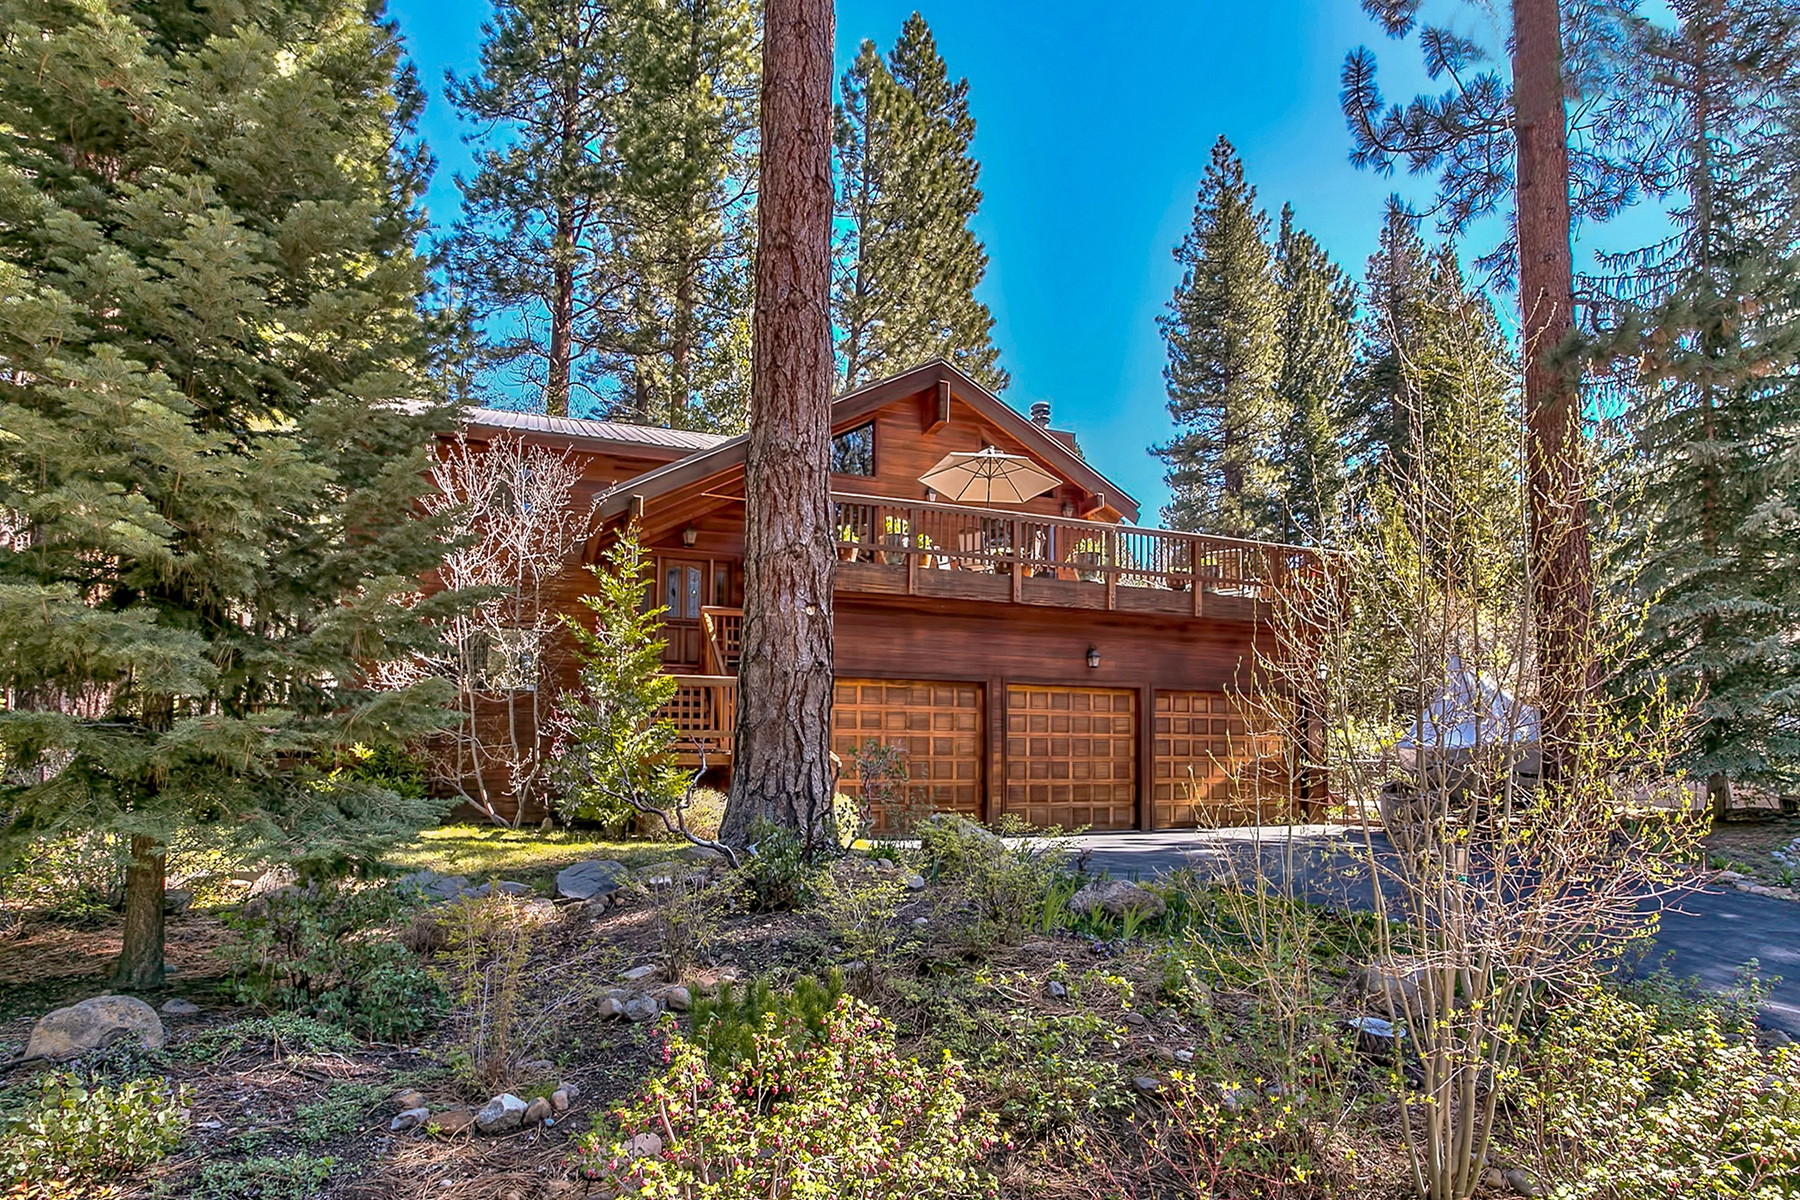 Maison unifamiliale pour l Vente à 842 Ophir Peak Road Incline Village, Nevada, 89451 Lake Tahoe, États-Unis